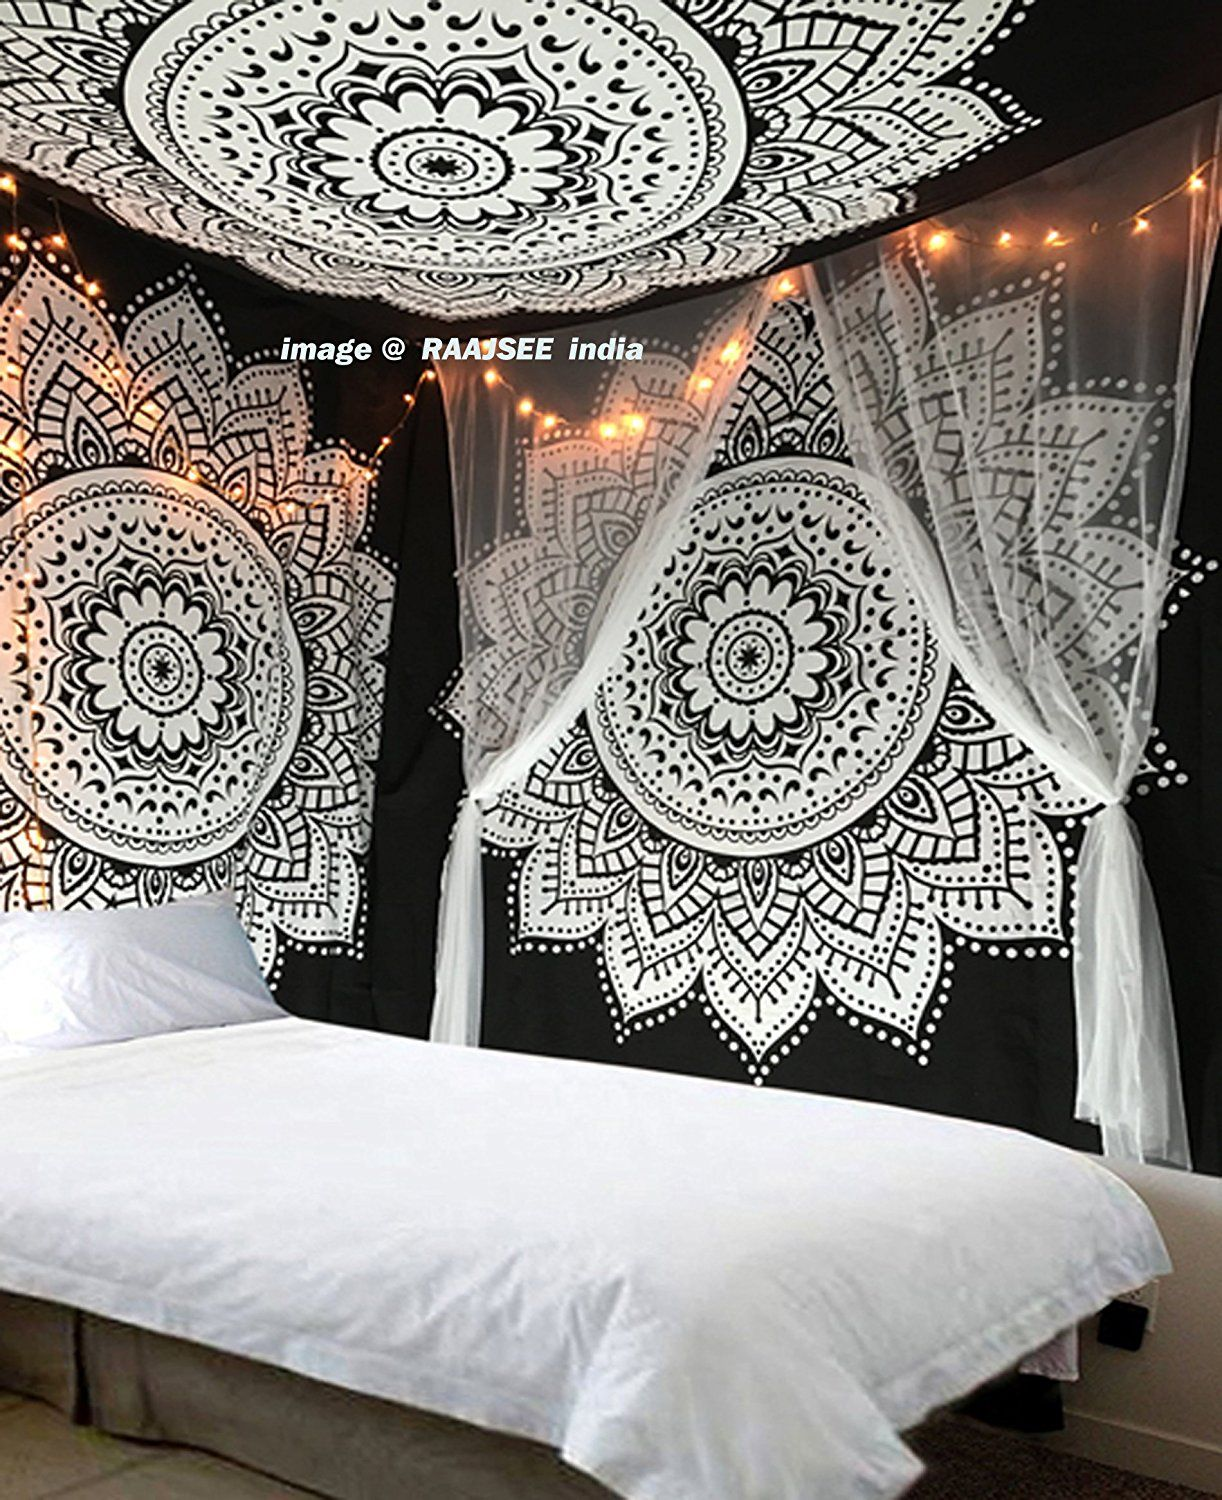 Exclusive 'black white Ombre Tapestry by raajsee' Ombre Bedding , Mandala Tapestry, Queen, Multi Color Indian Mandala Wall Art Hippie Wall Hanging Bohemian Bedspread >>> Check out this great product. (This is an affiliate link) #Tapestries